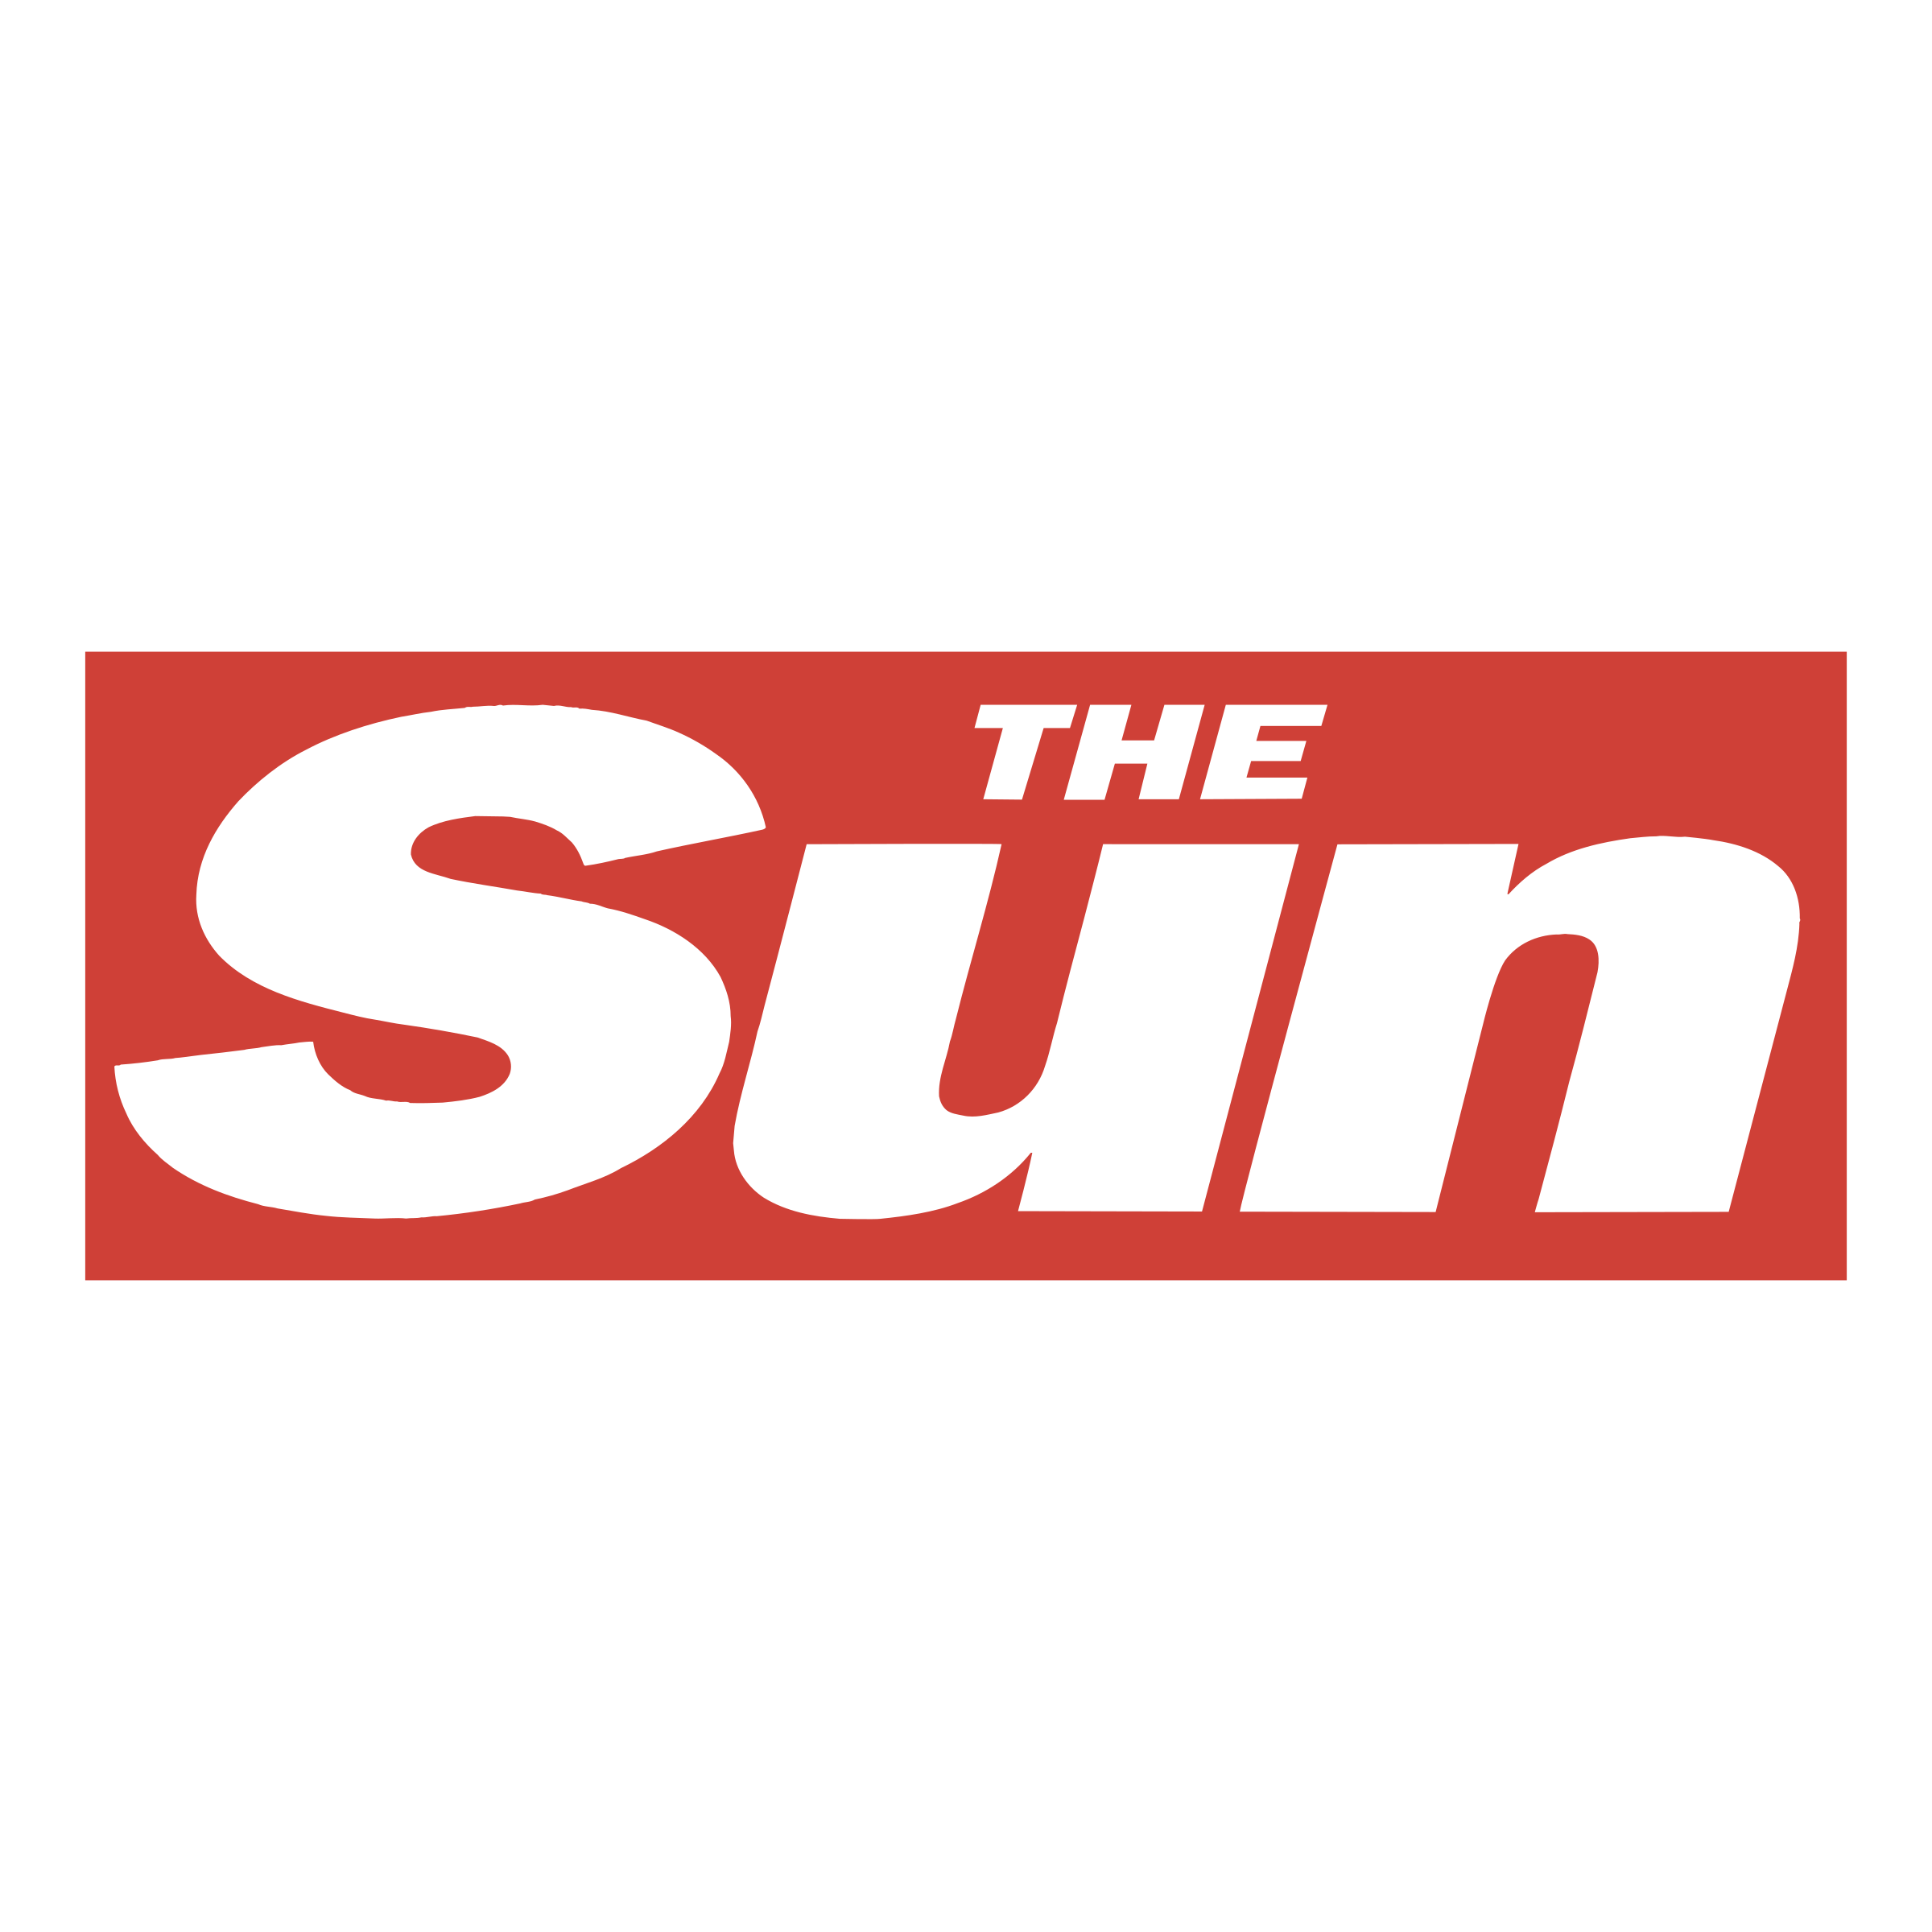 Newspaper logo png. The sun transparent svg